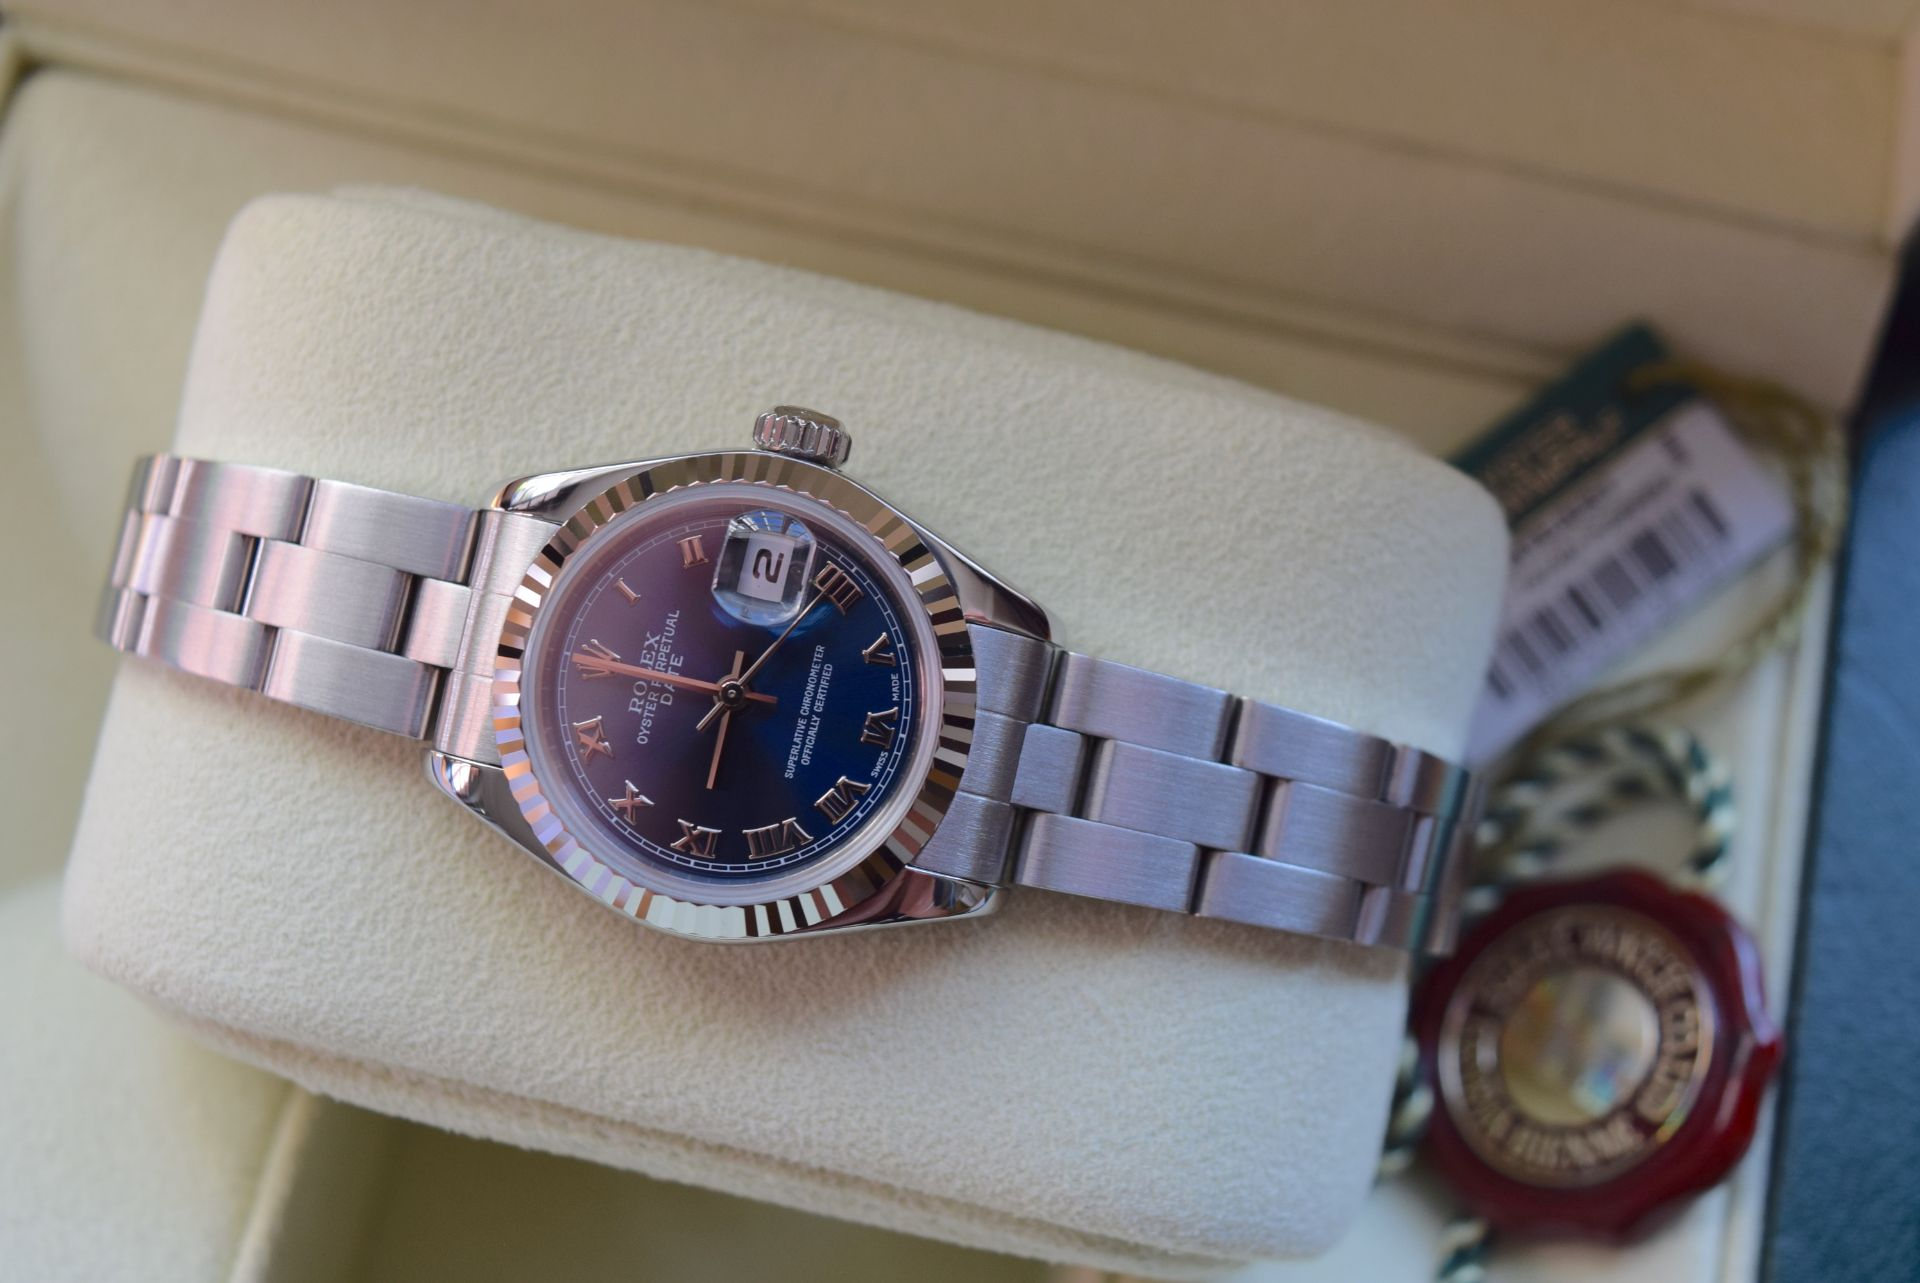 *FULL SET* ROLEX DATEJUST (LADIES) STEEL & 18CT WHITE GOLD - NAVY BLUE 'ROMAN NUMERAL' DIAL